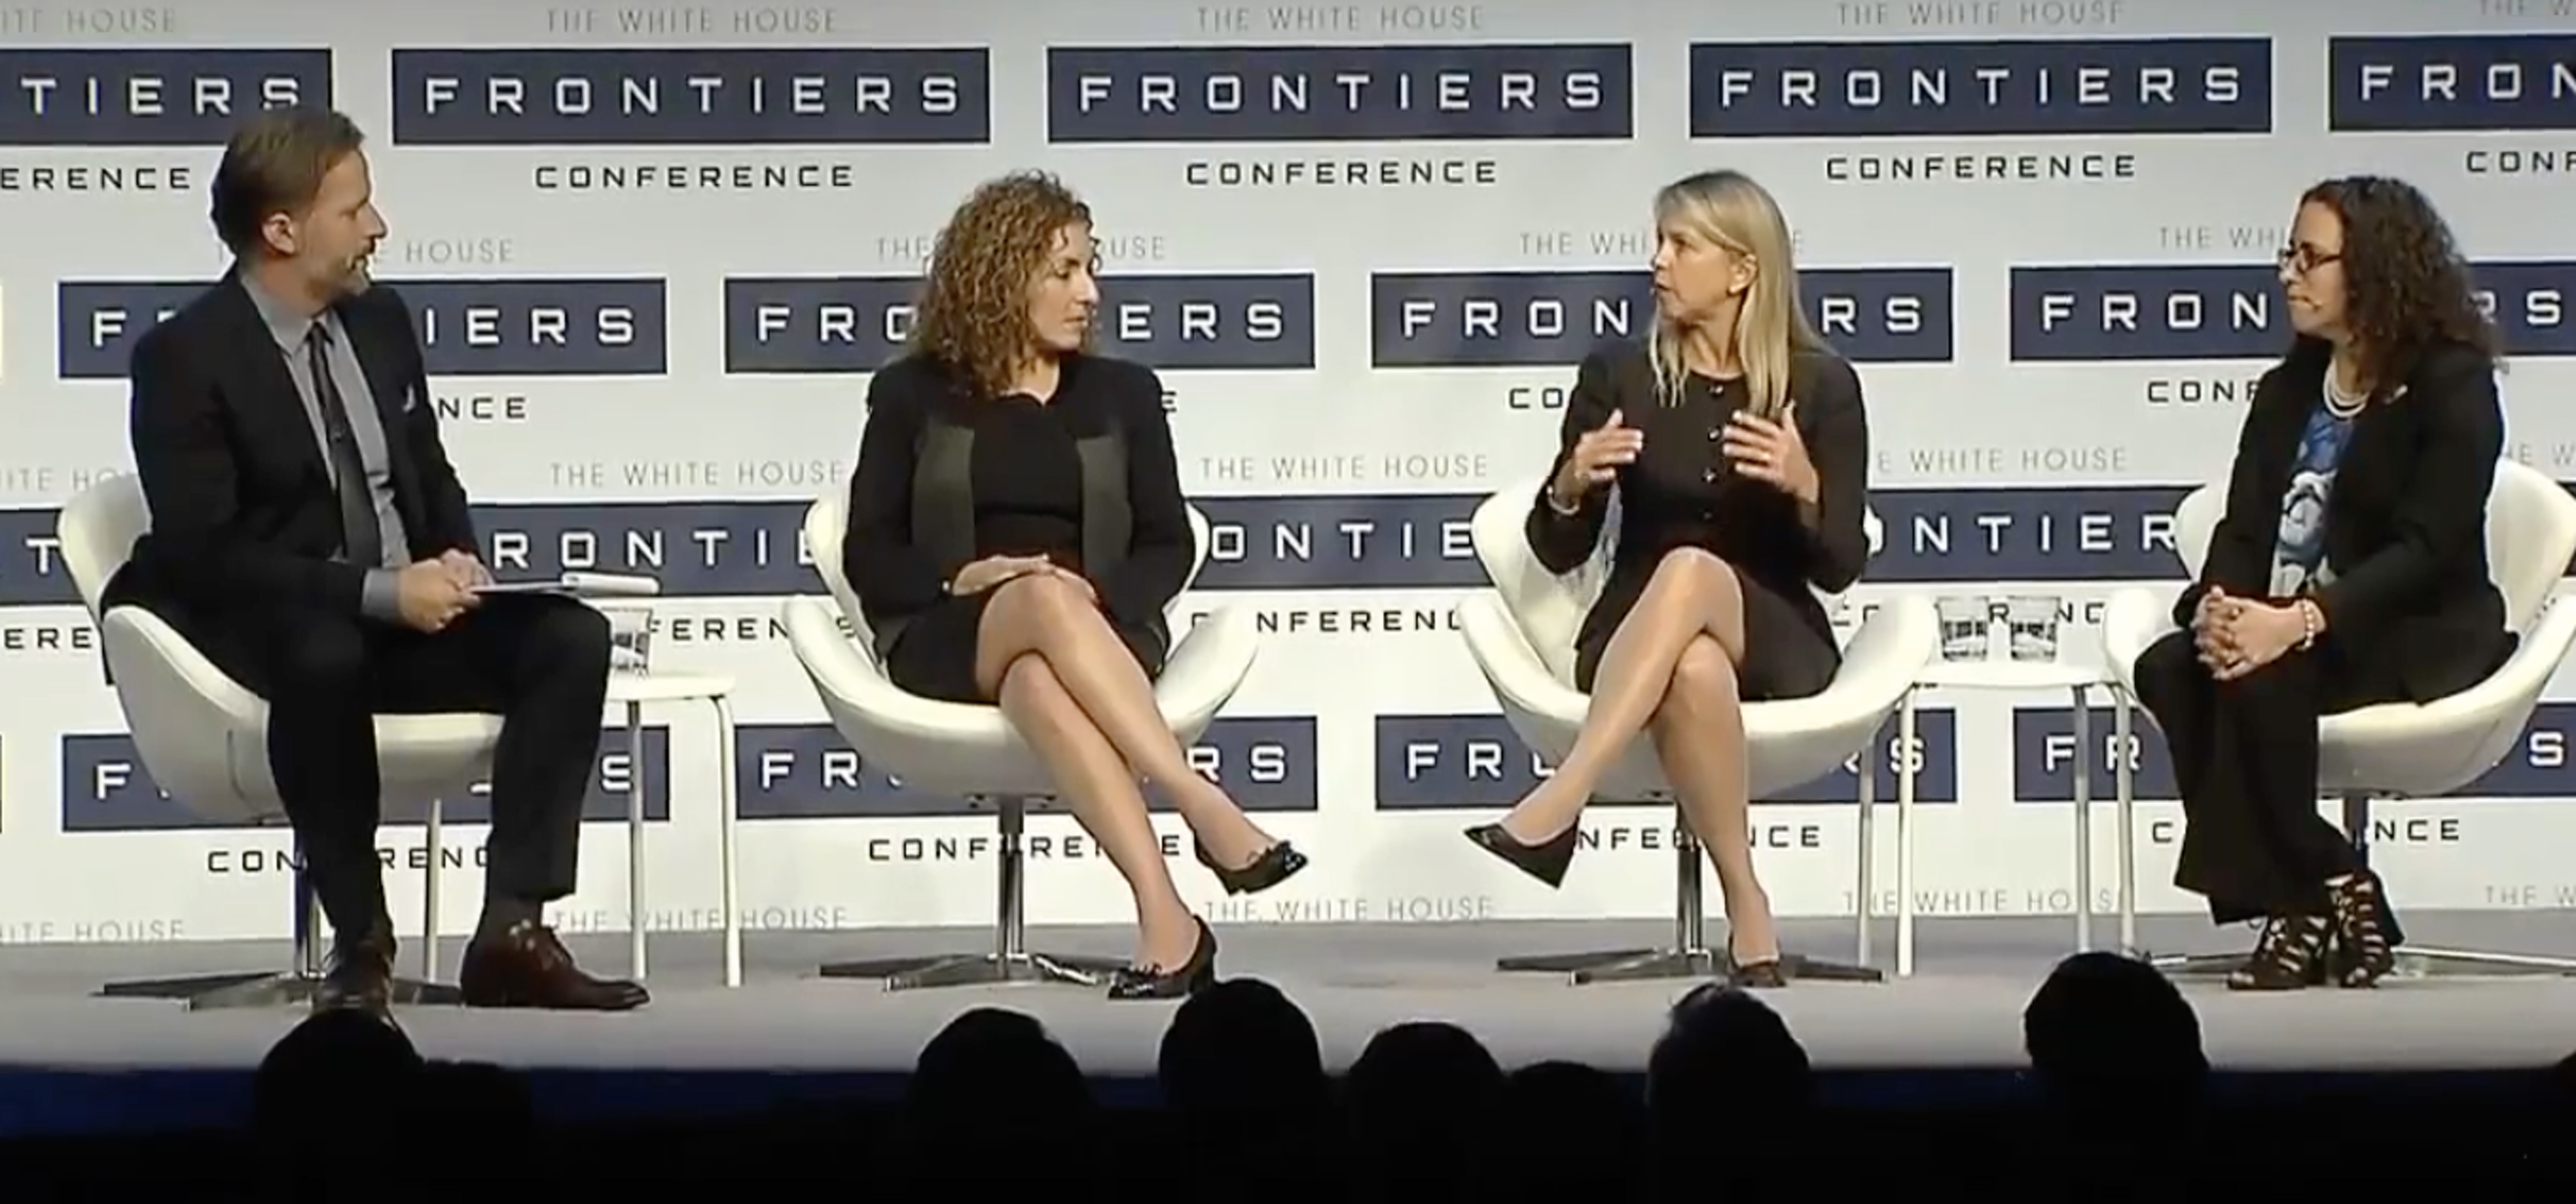 From left to right: Moderator Robert Capps of 'Wired' magazine; Anousheh Ansari, CEO and Co-Founder of Prodea Systems, Inc.; Dava Newman, Deputy Administrator at NASA; and Erika Wagner, Business Development Manager at Blue Origin.